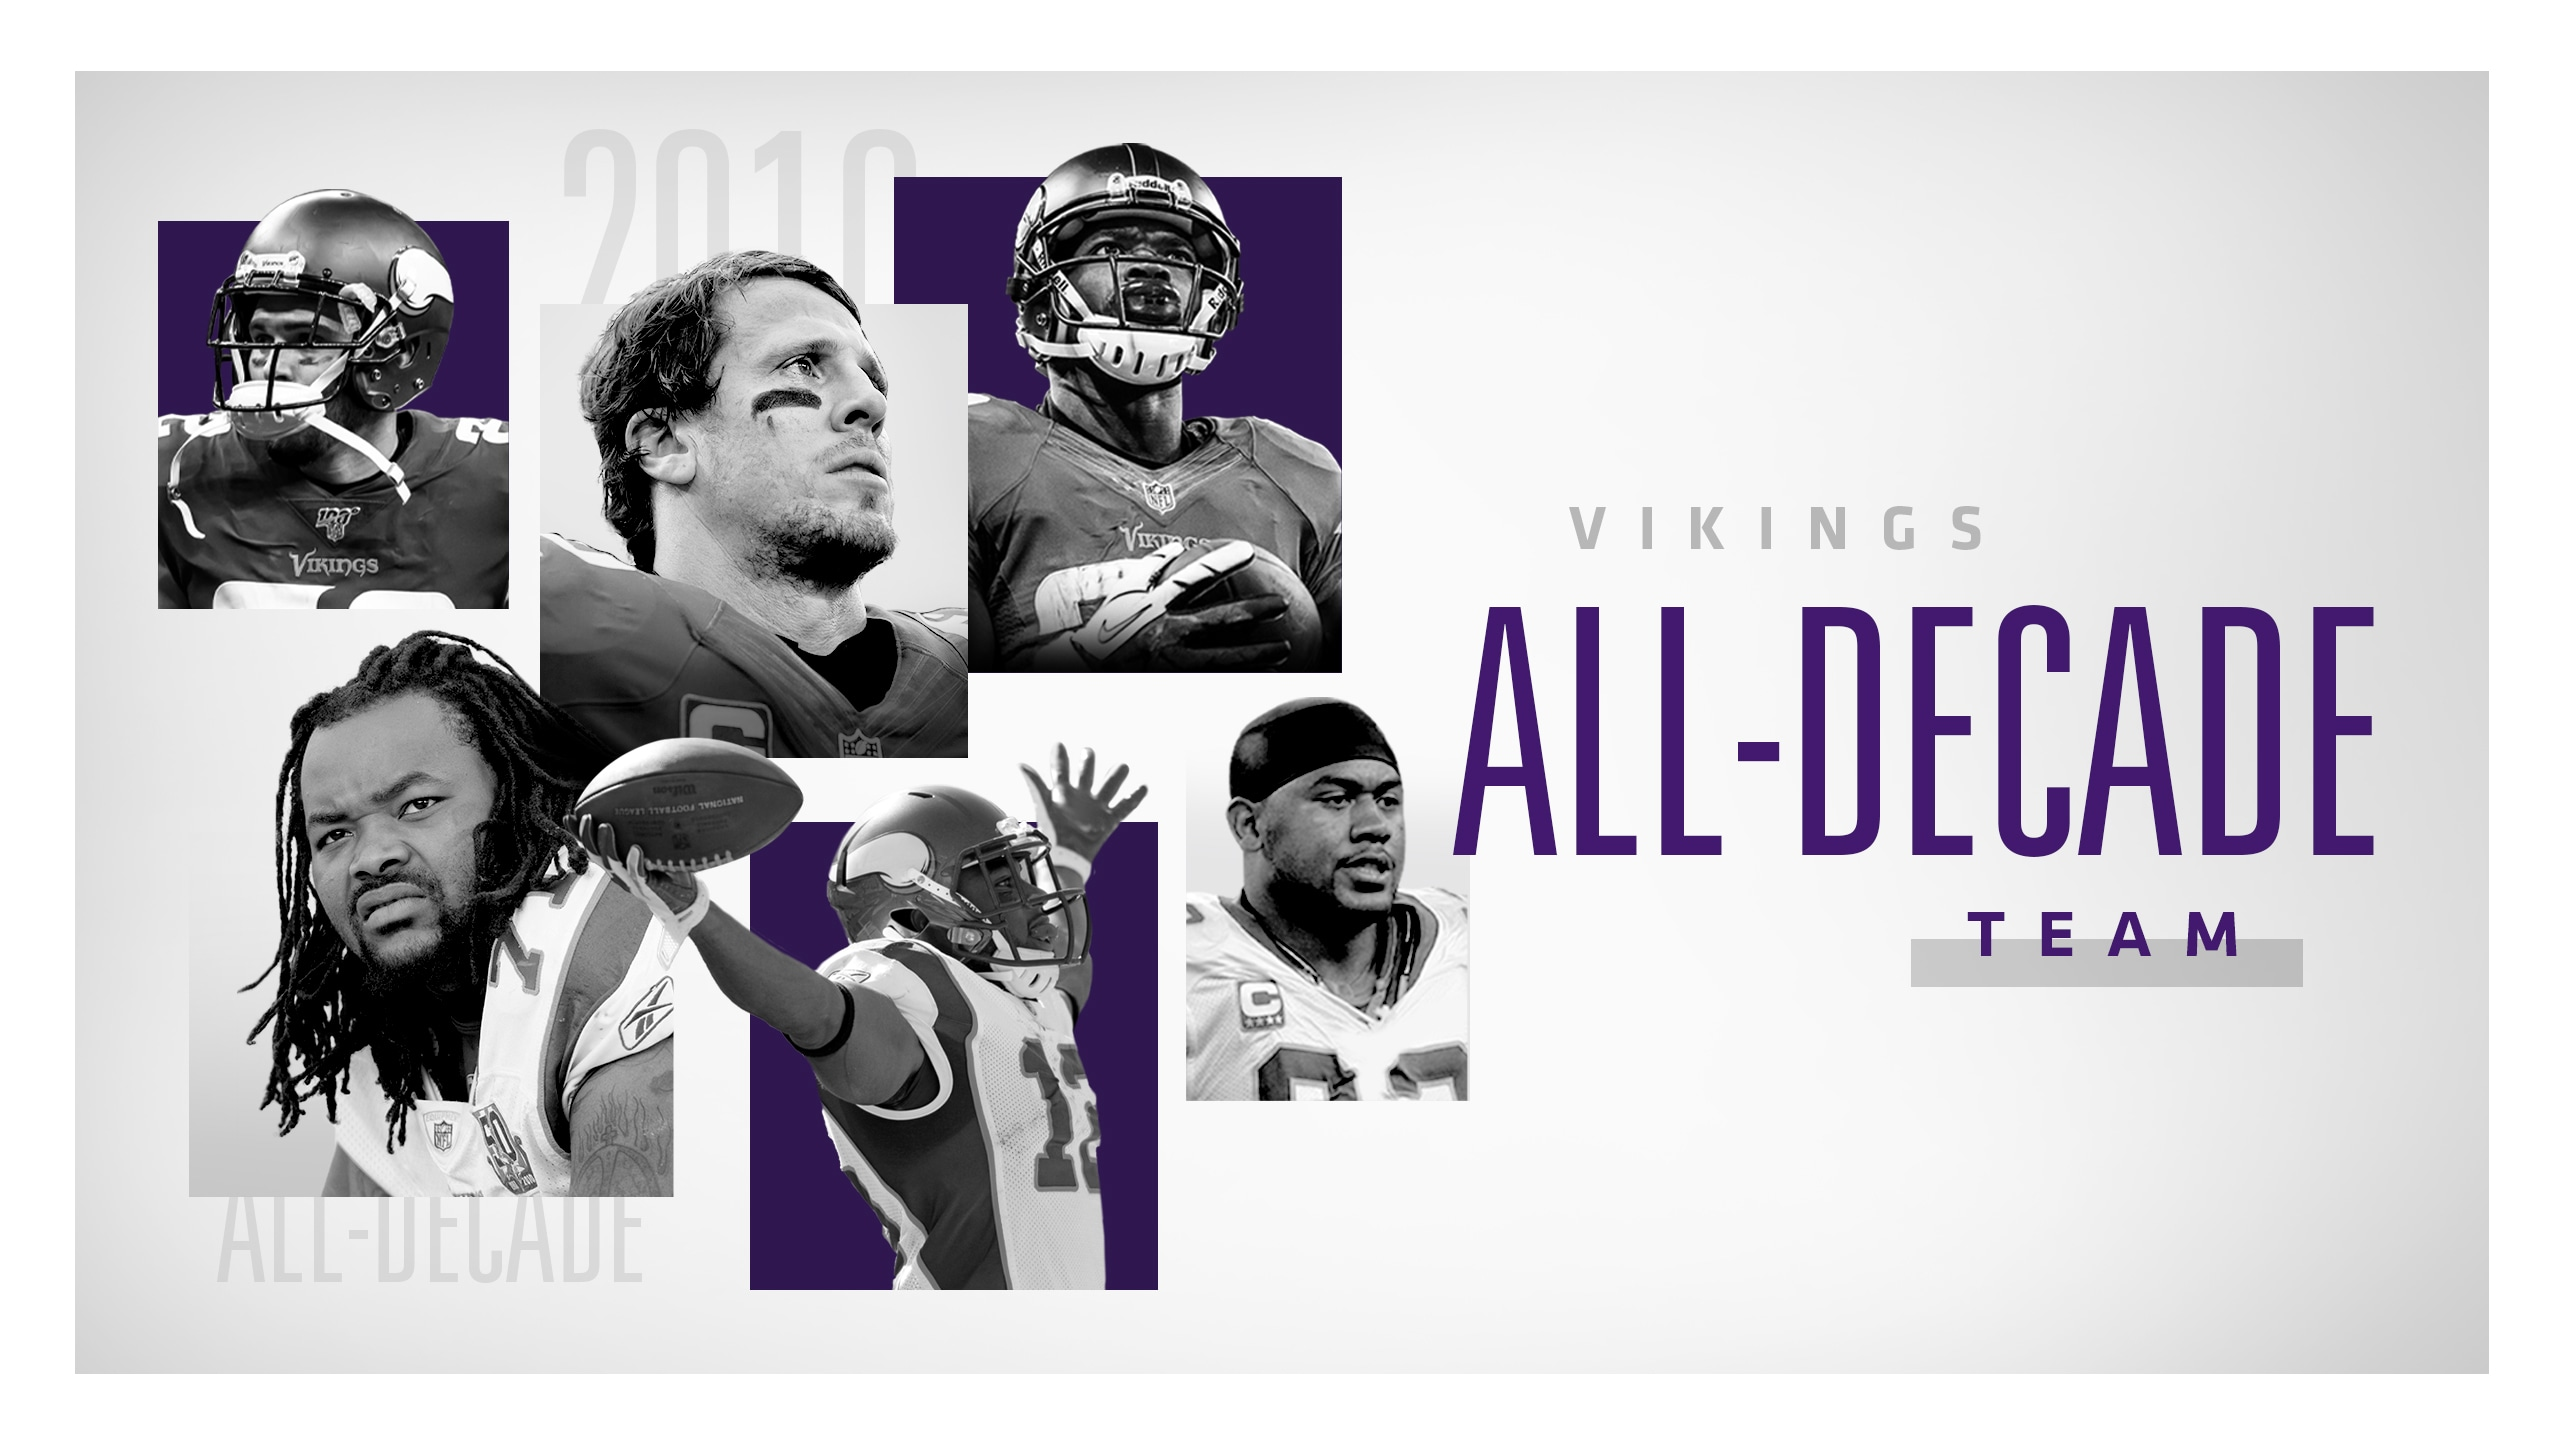 Minnesota Vikings All-Decade Team Discussion